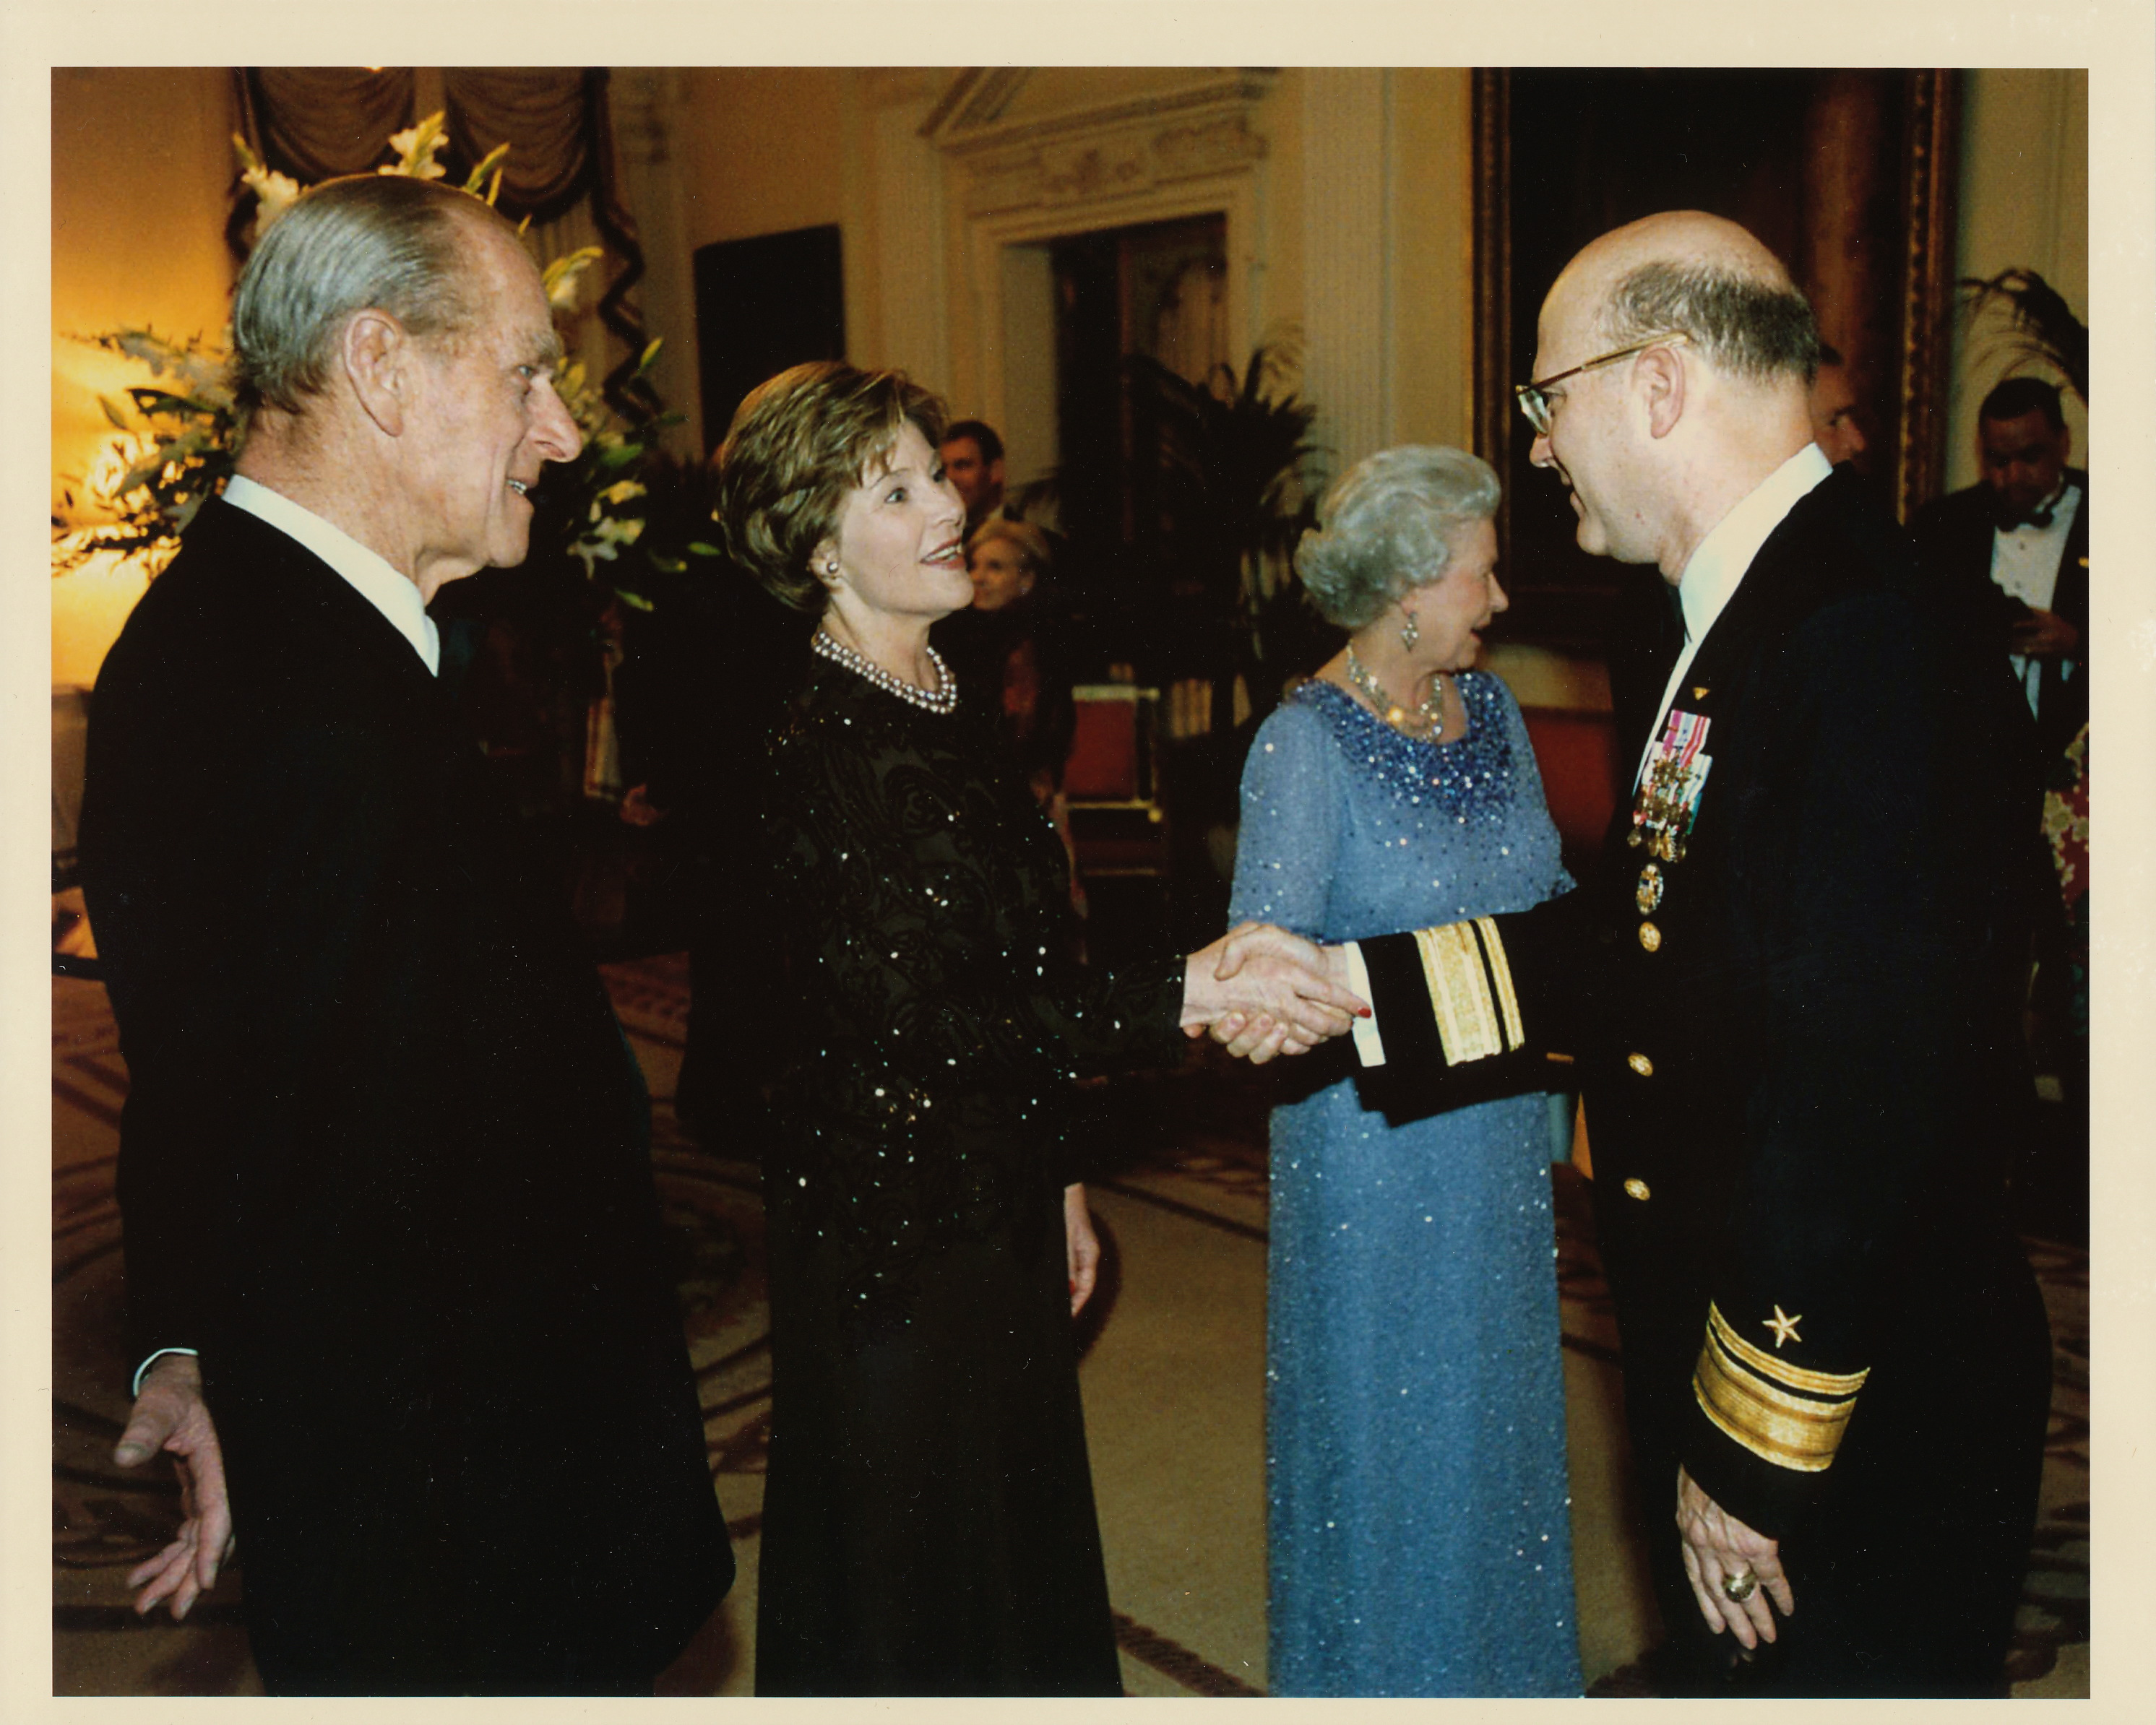 Lou meets the Queen, First Lady Laura Bush and Prince Phillip as Commander Navy Region Europe